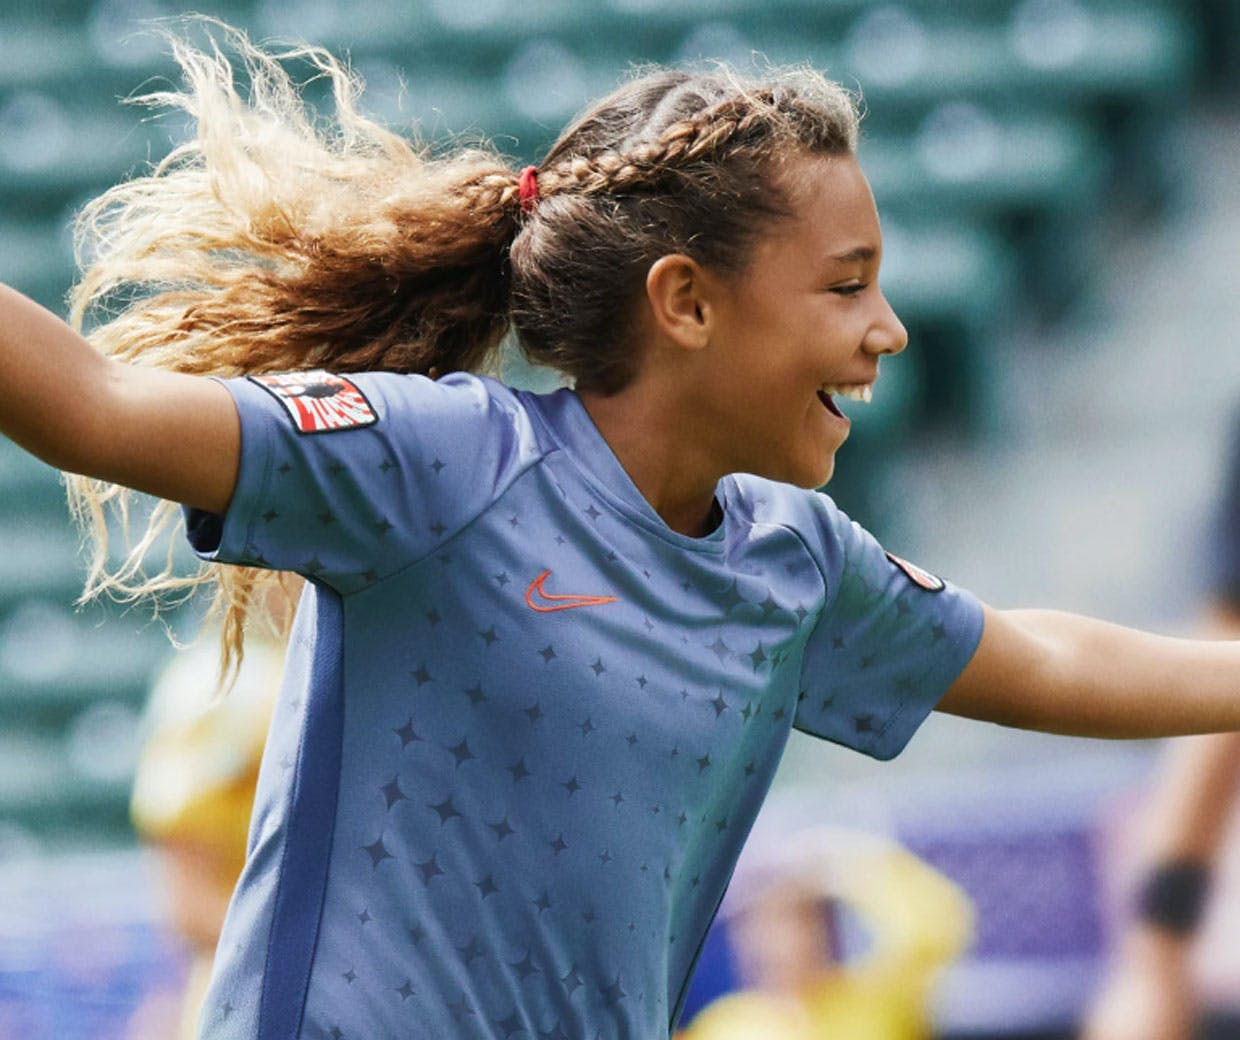 d71fa11d1 Sky Sports teams up with Visa to launch new Women's World Cup programme: Women's  World Cup 2019 blog